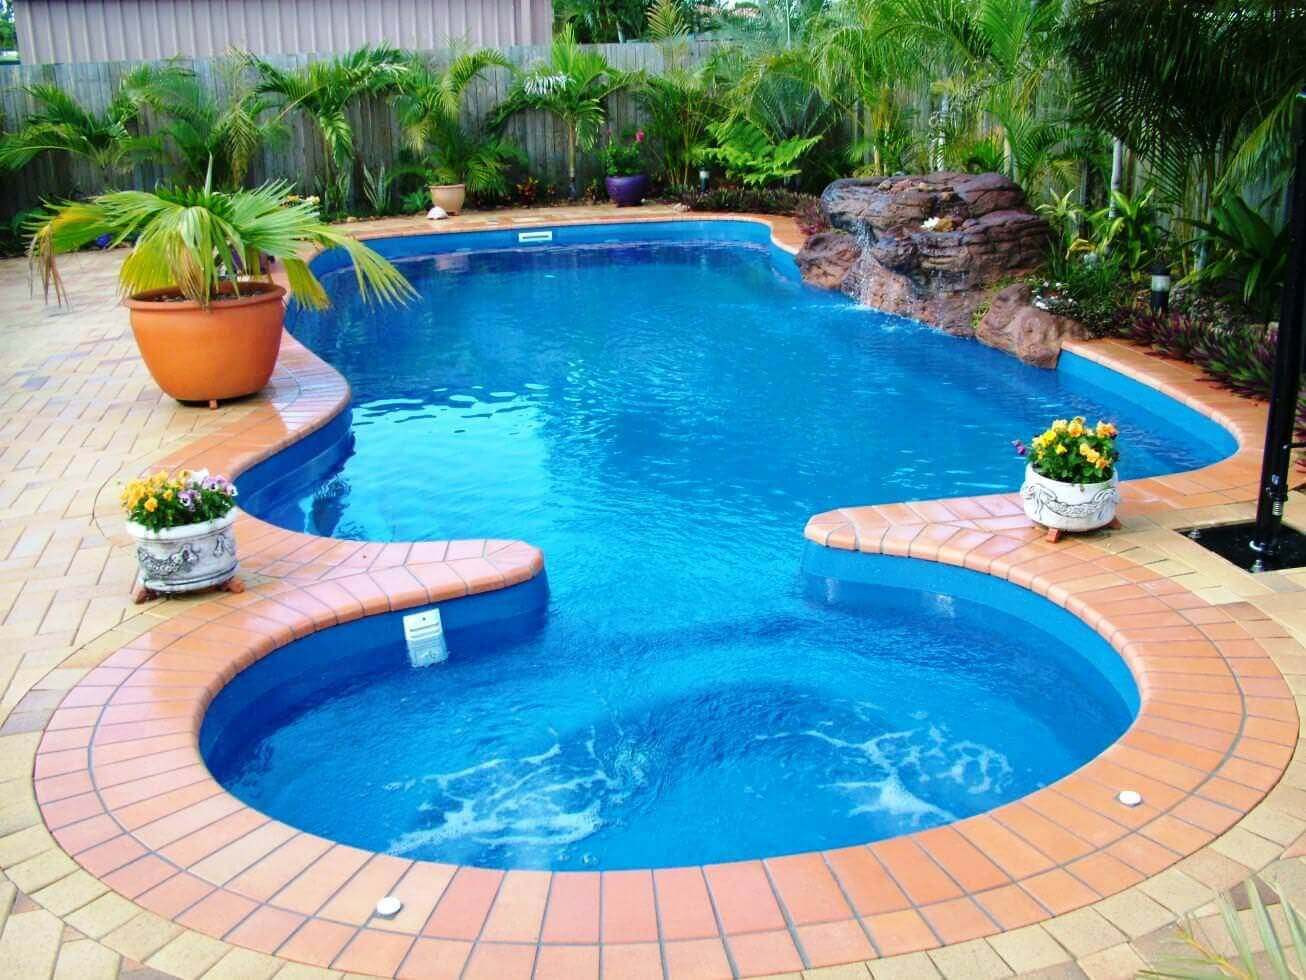 Best ideas about Cost Of An Inground Pool . Save or Pin Inground Swimming Pools Now.